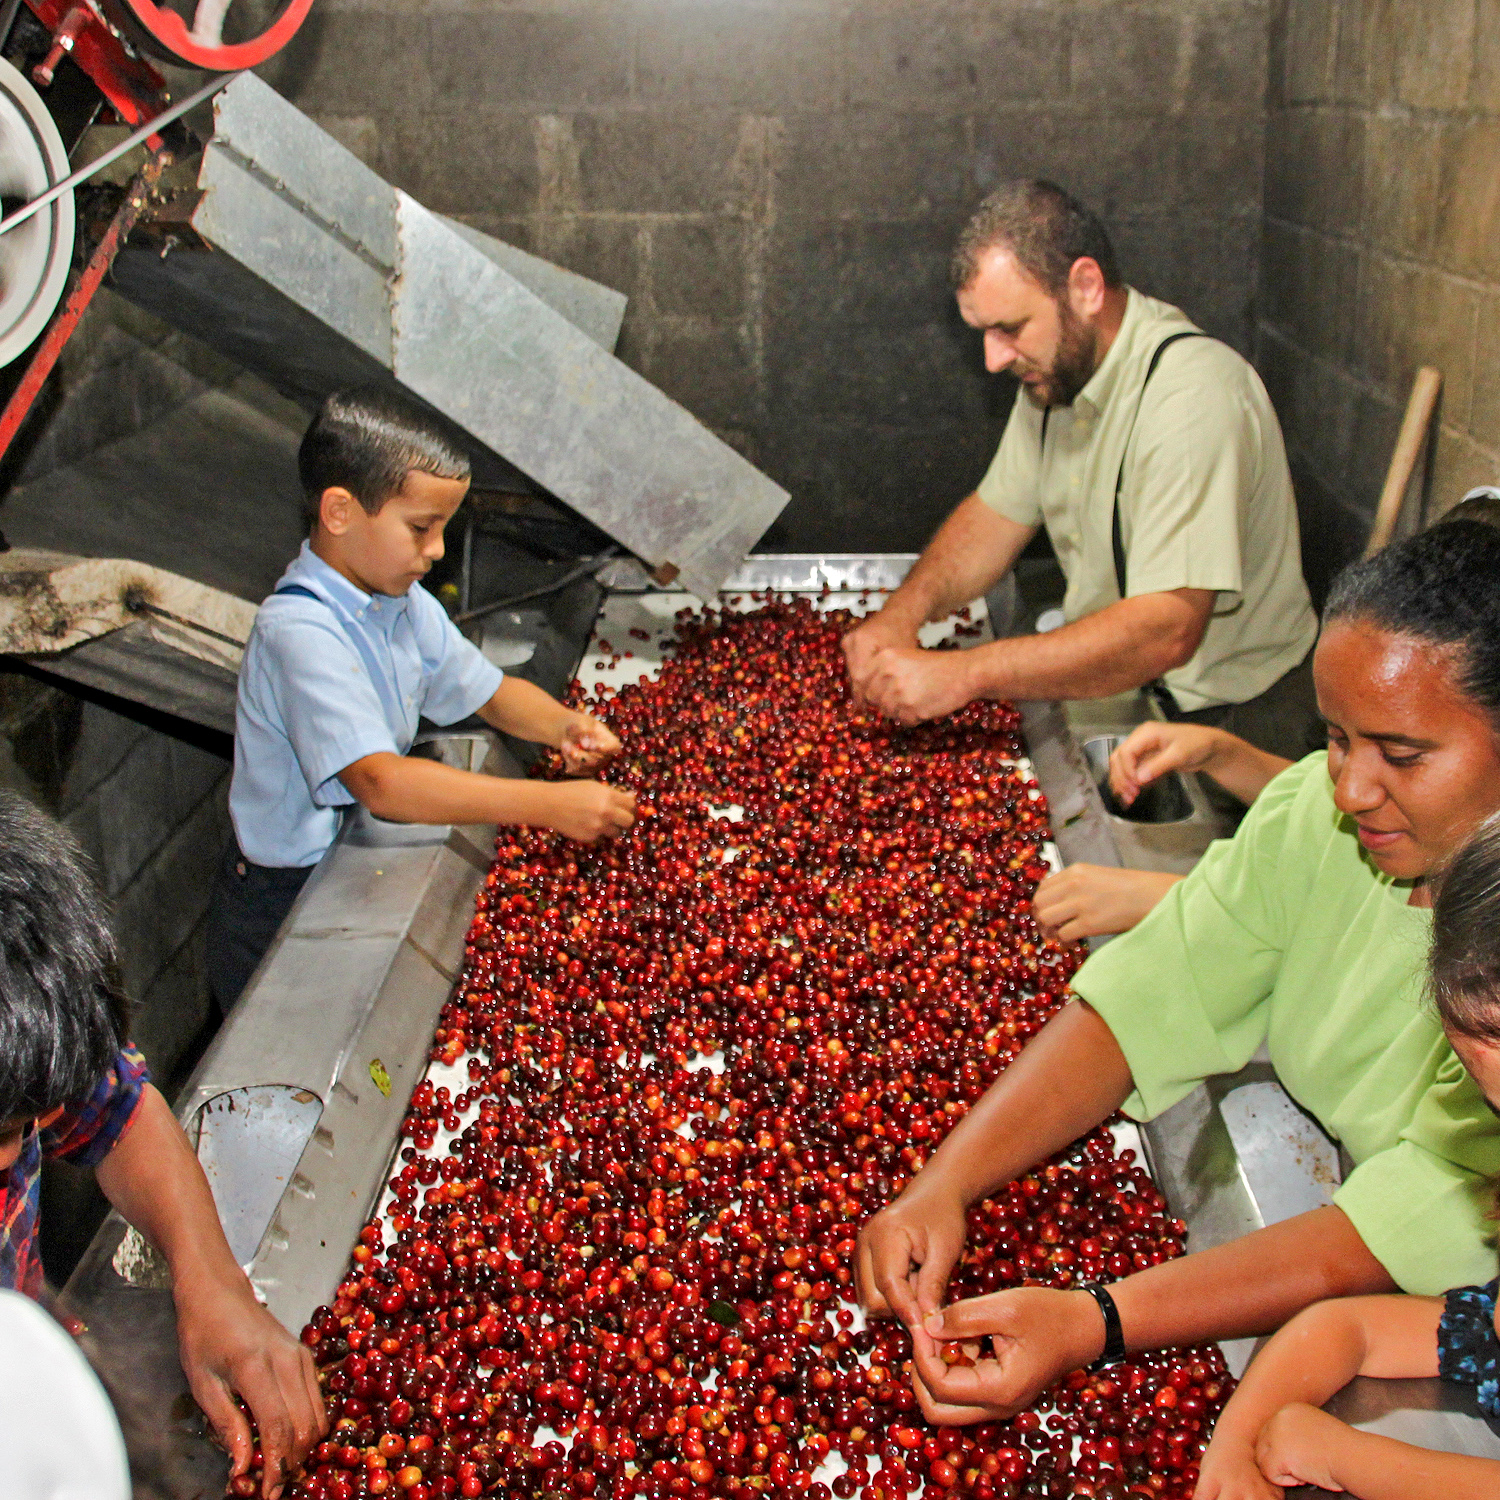 sorting coffee for southern pecan flavored coffee